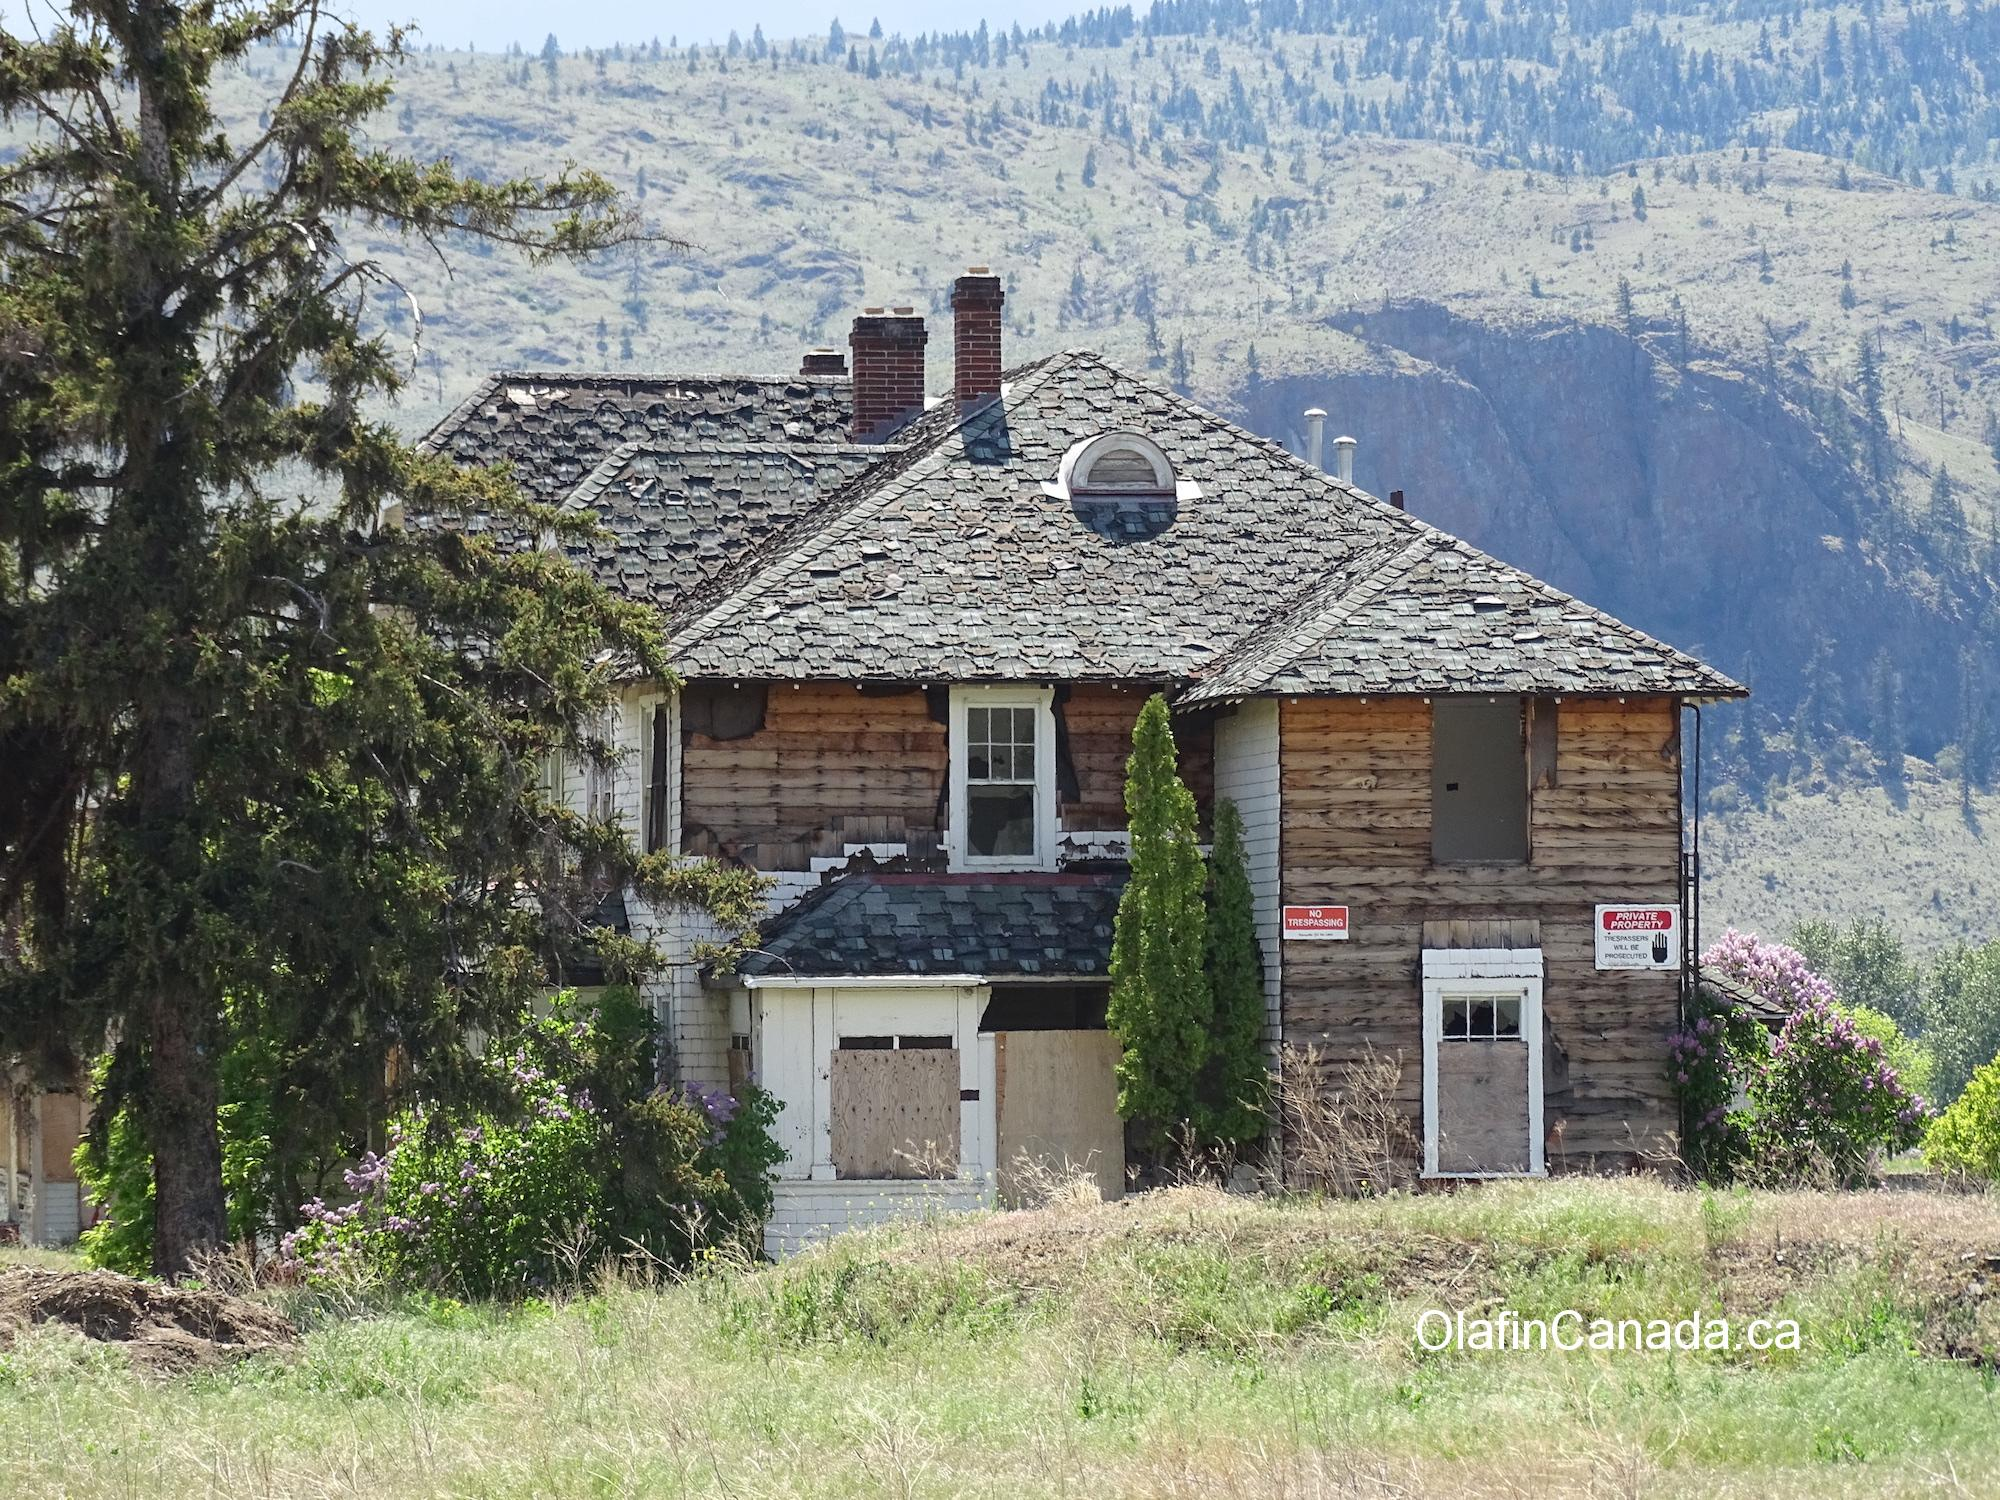 Boarded up house in Tranquille, near Kamloops. #olafincanada #britishcolumbia #discoverbc #abandonedbc #tranquille